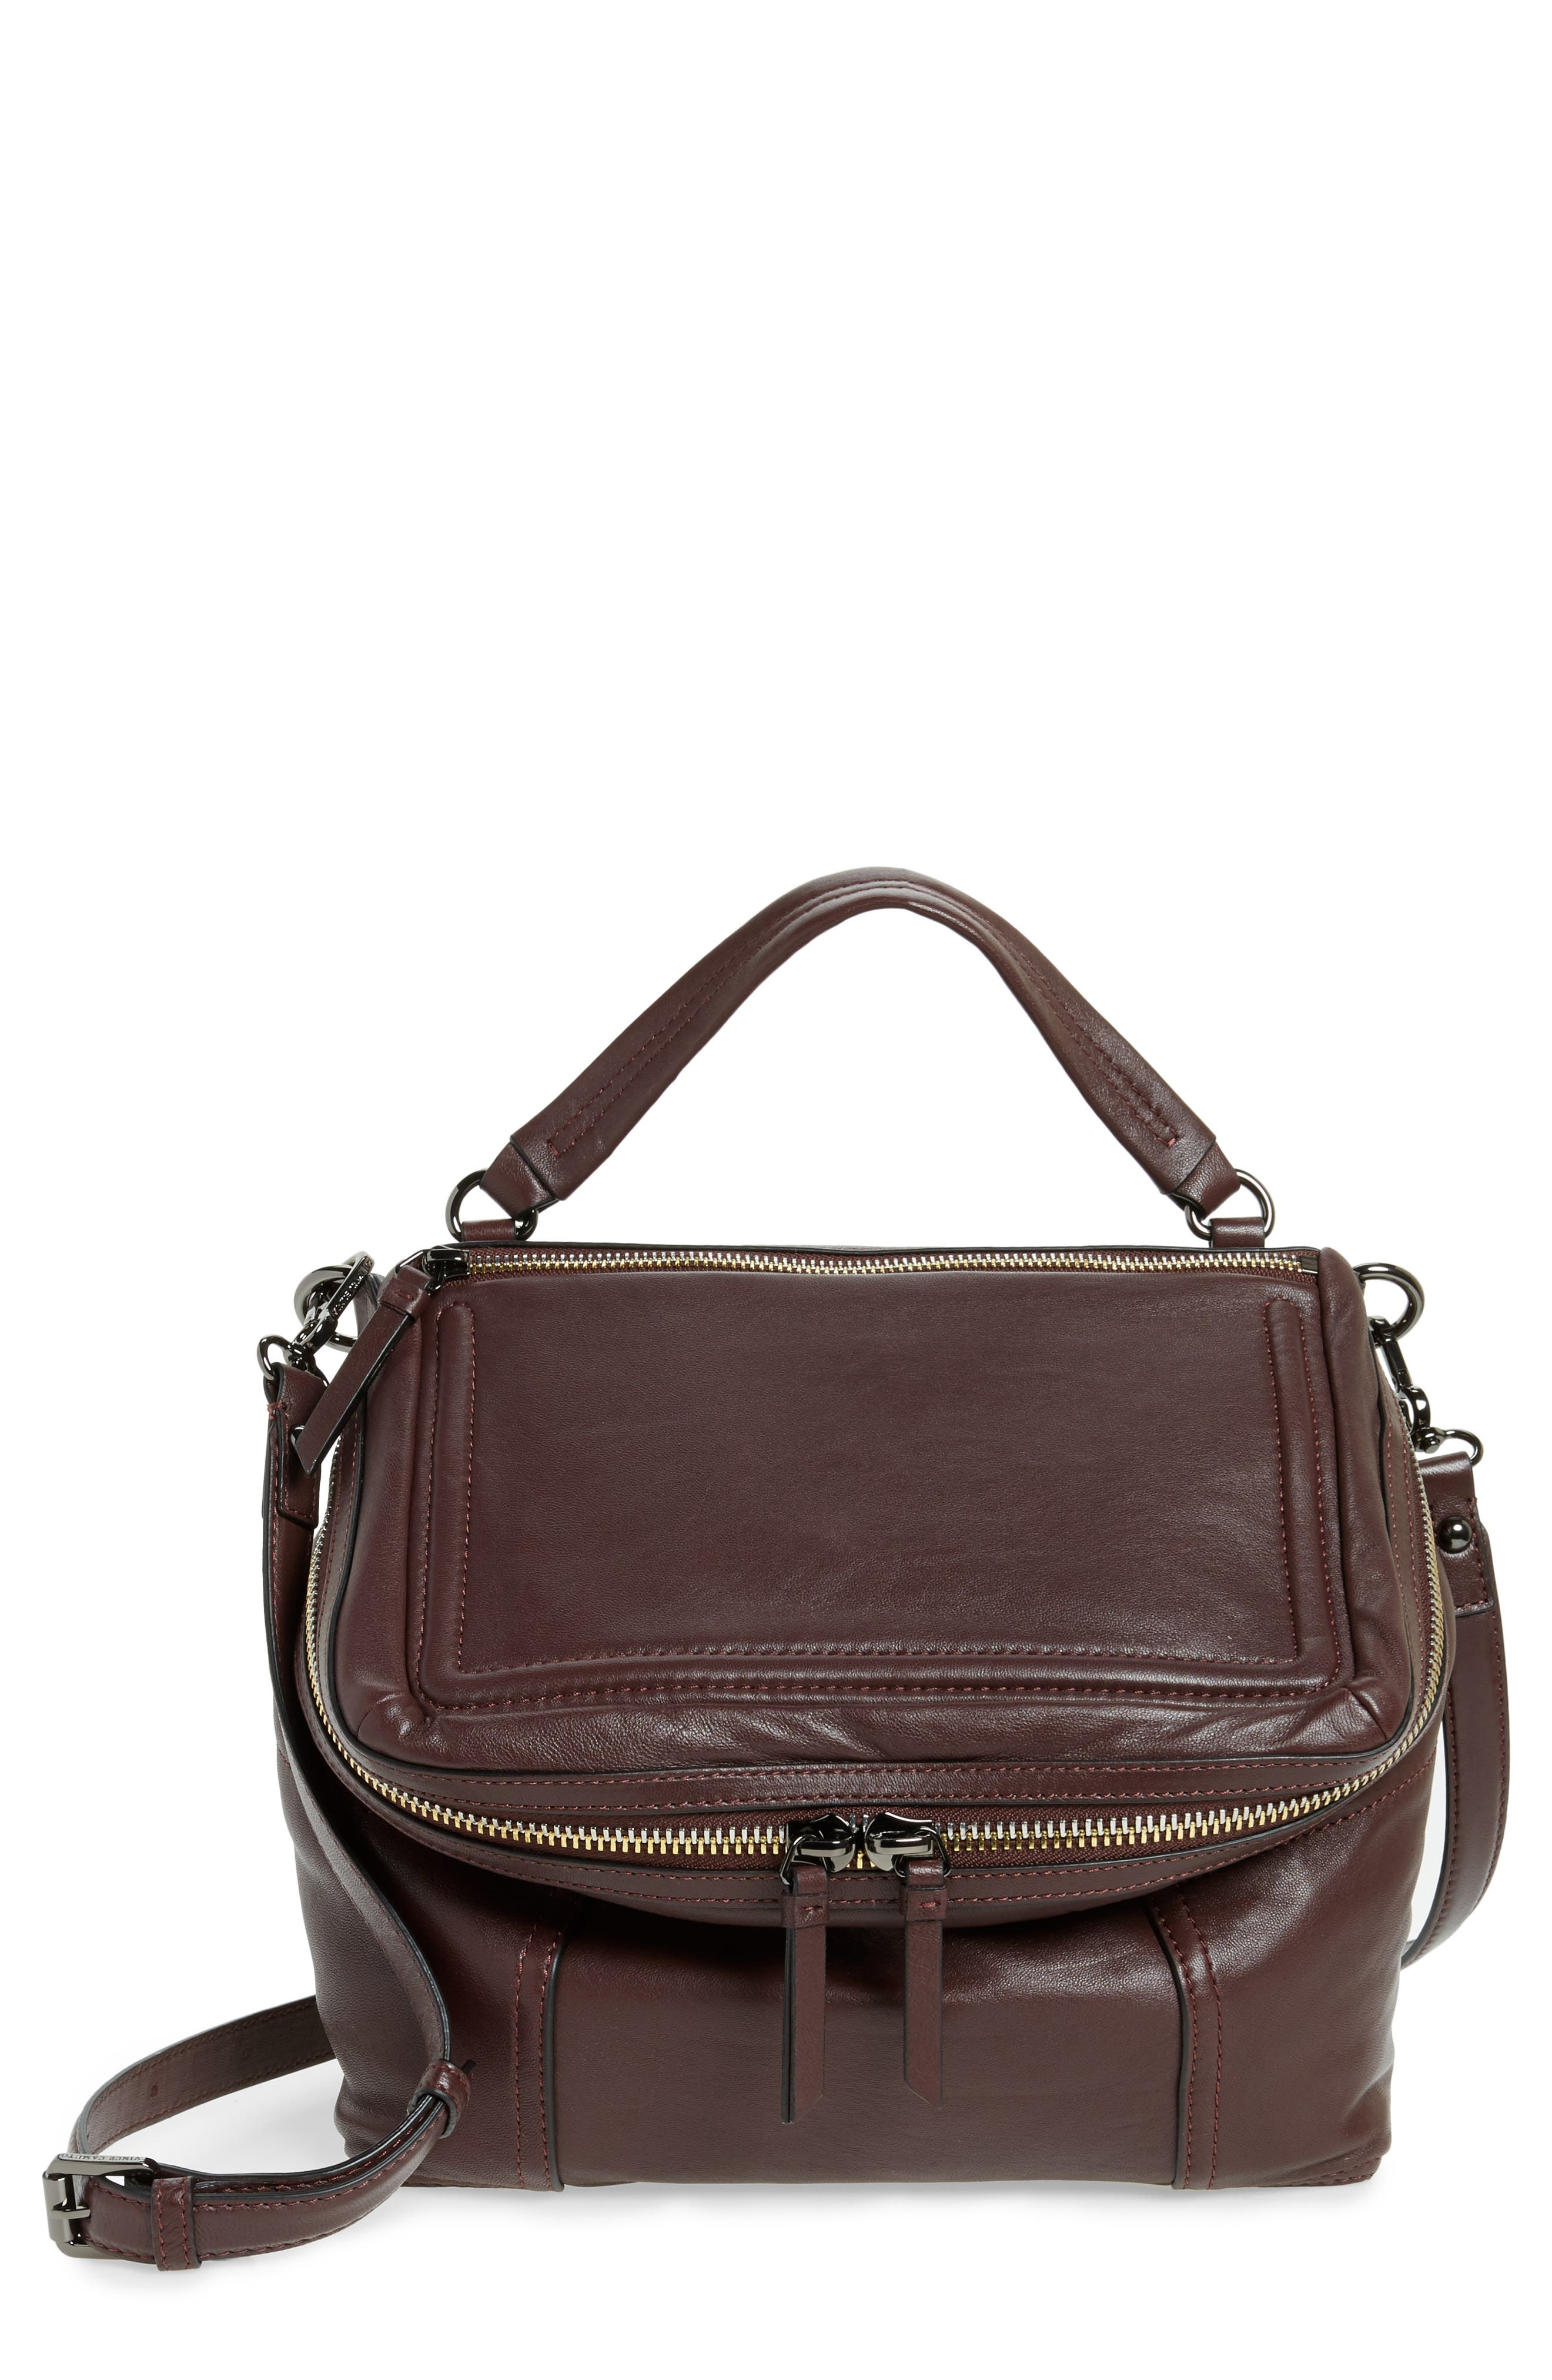 Large Patch Leather Crossbody Bag,                             Main thumbnail 1, color,                             Black Cherry